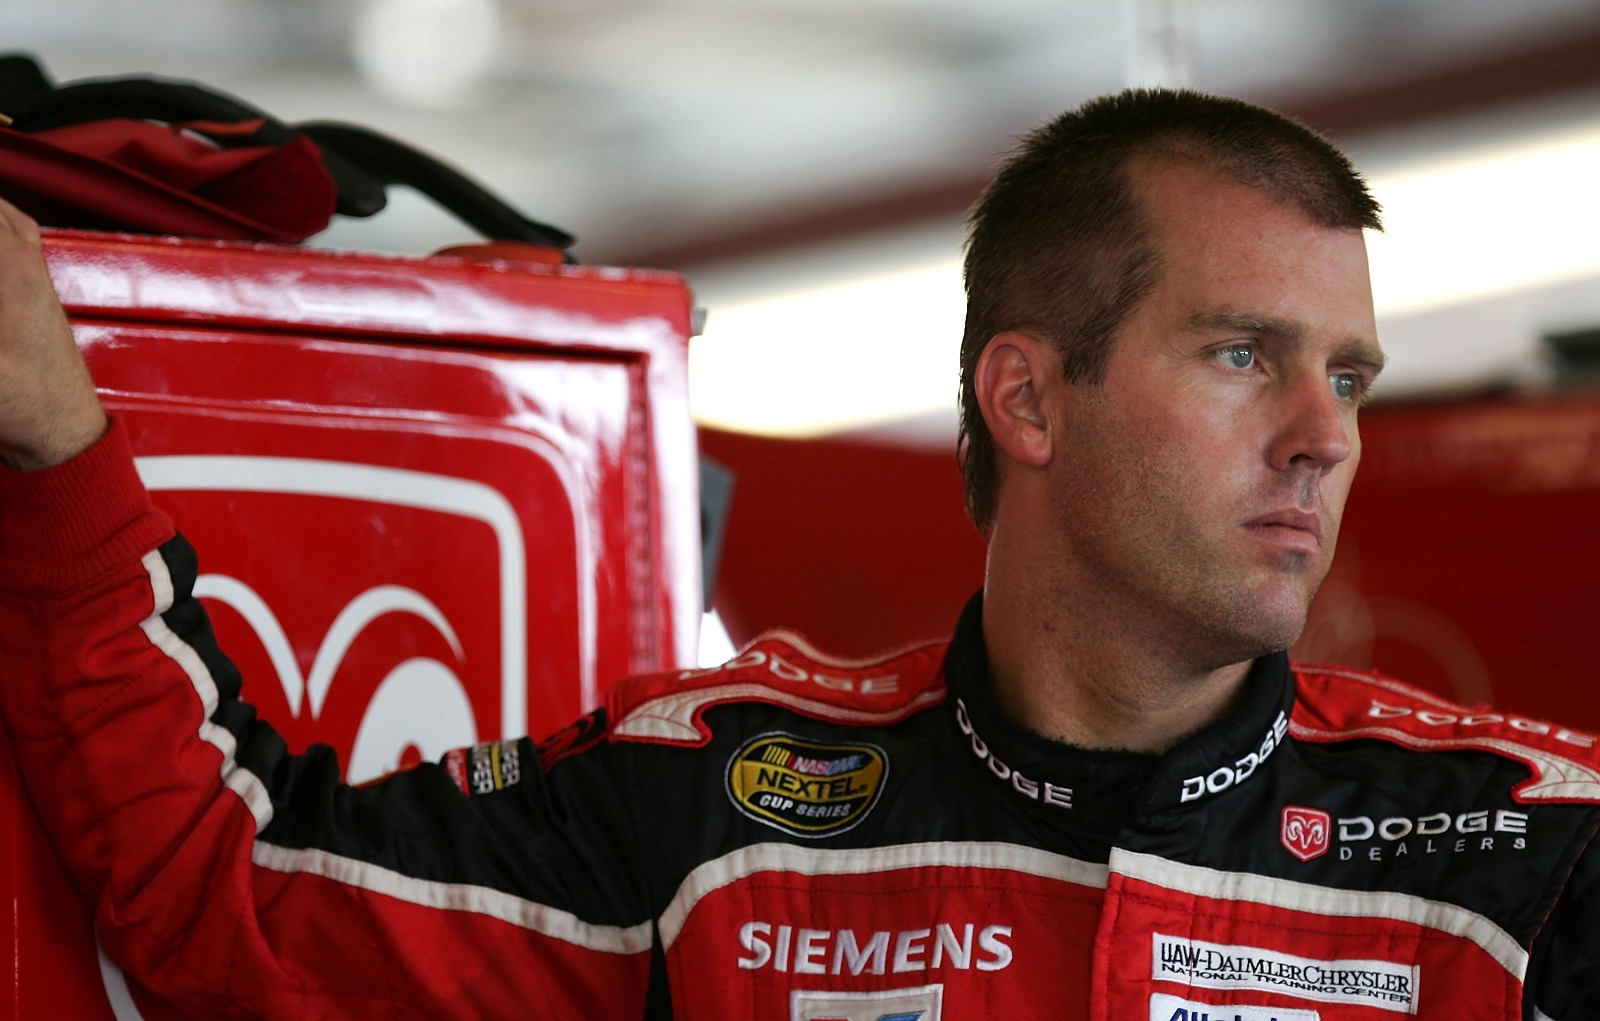 Jeremy Mayfield NASCAR career changed meth stepmom murder accusations